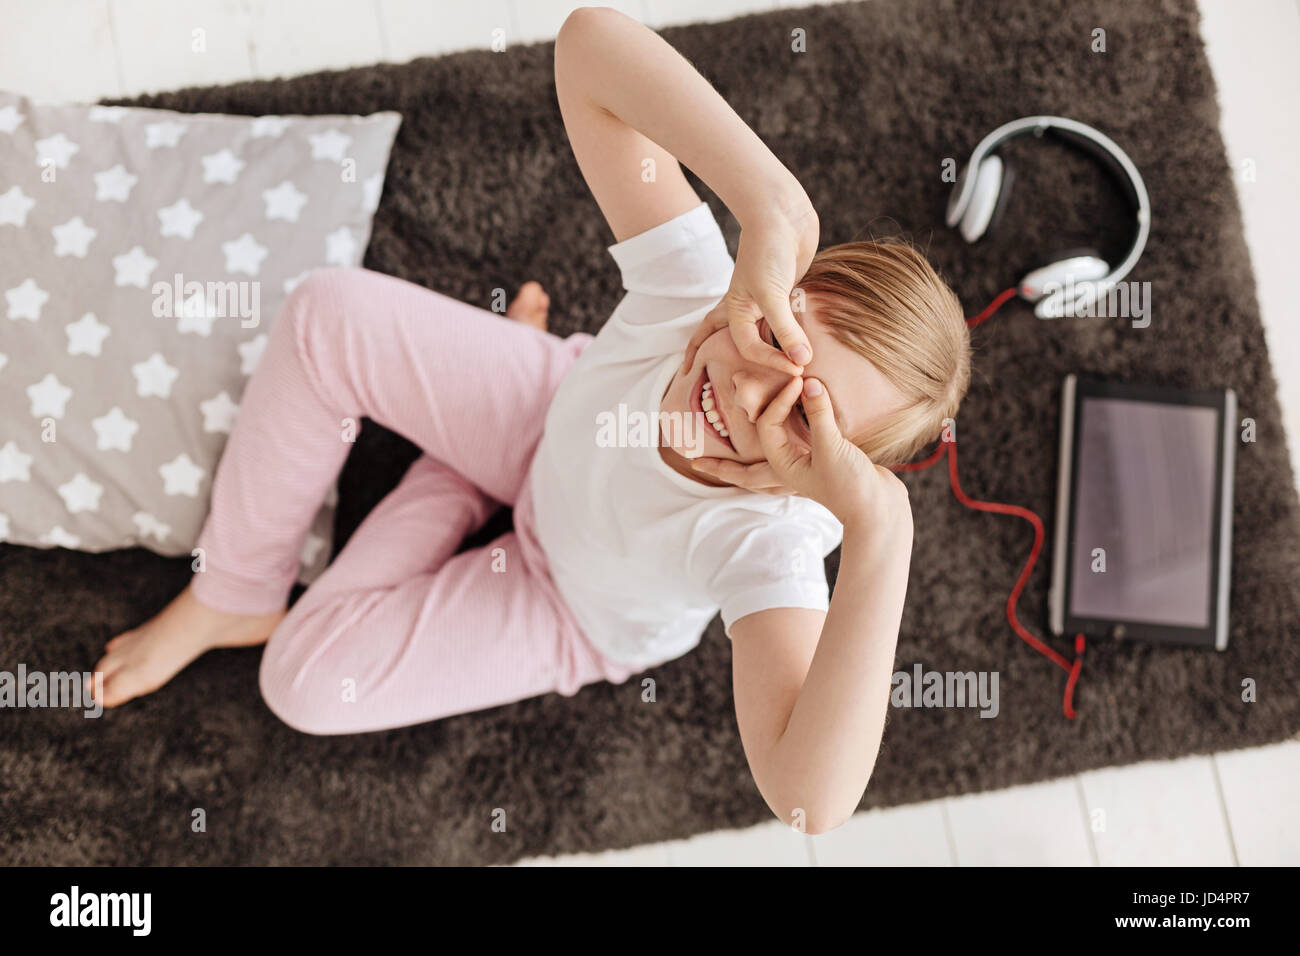 Hilarious cute girl goofing around in her room - Stock Image